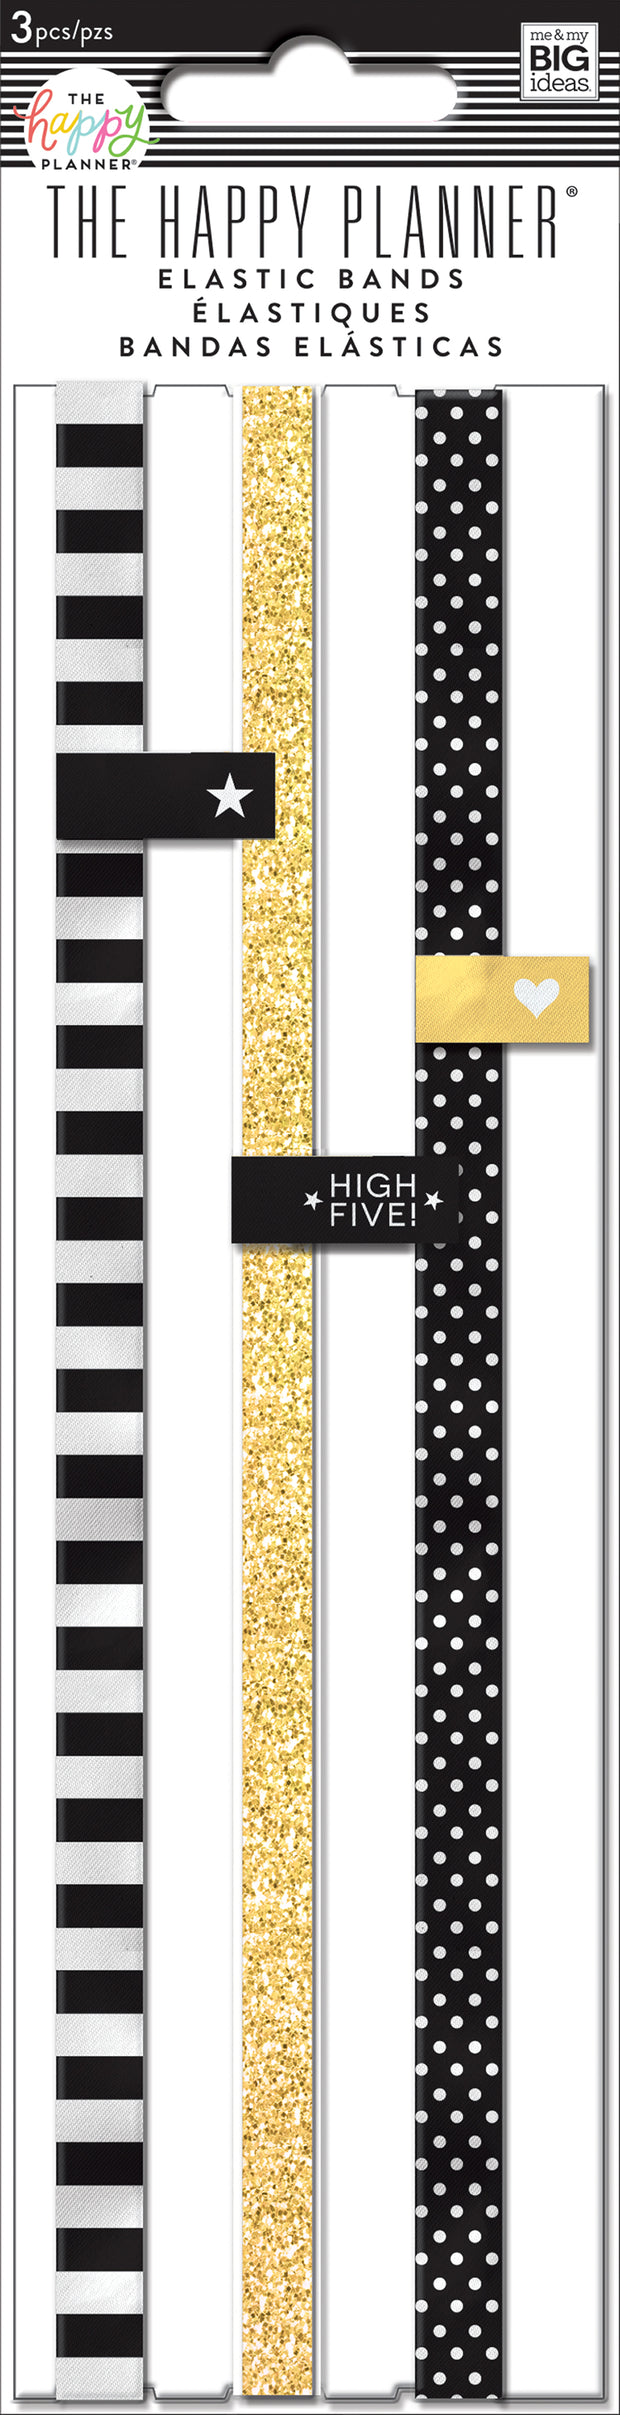 Black, White and Gold Elastic Bands - Classic